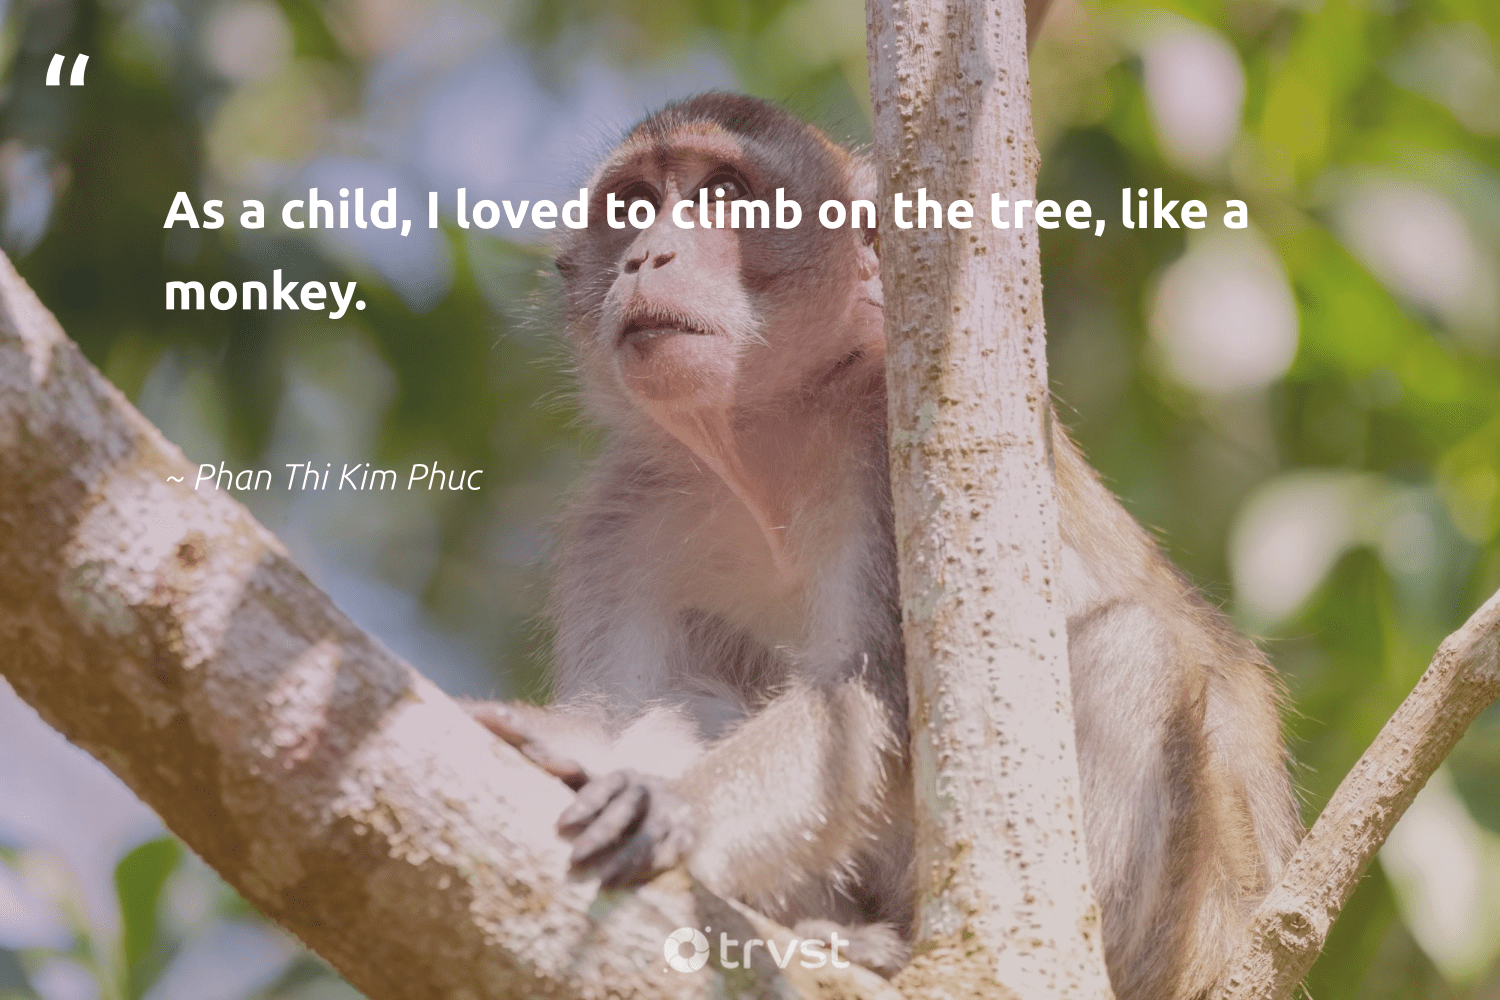 """As a child, I loved to climb on the tree, like a monkey.""  - Phan Thi Kim Phuc #trvst #quotes #monkey #tree #conservation #socialchange #majesticwildlife #beinspired #splendidanimals #bethechange #animalphotography #dotherightthing"